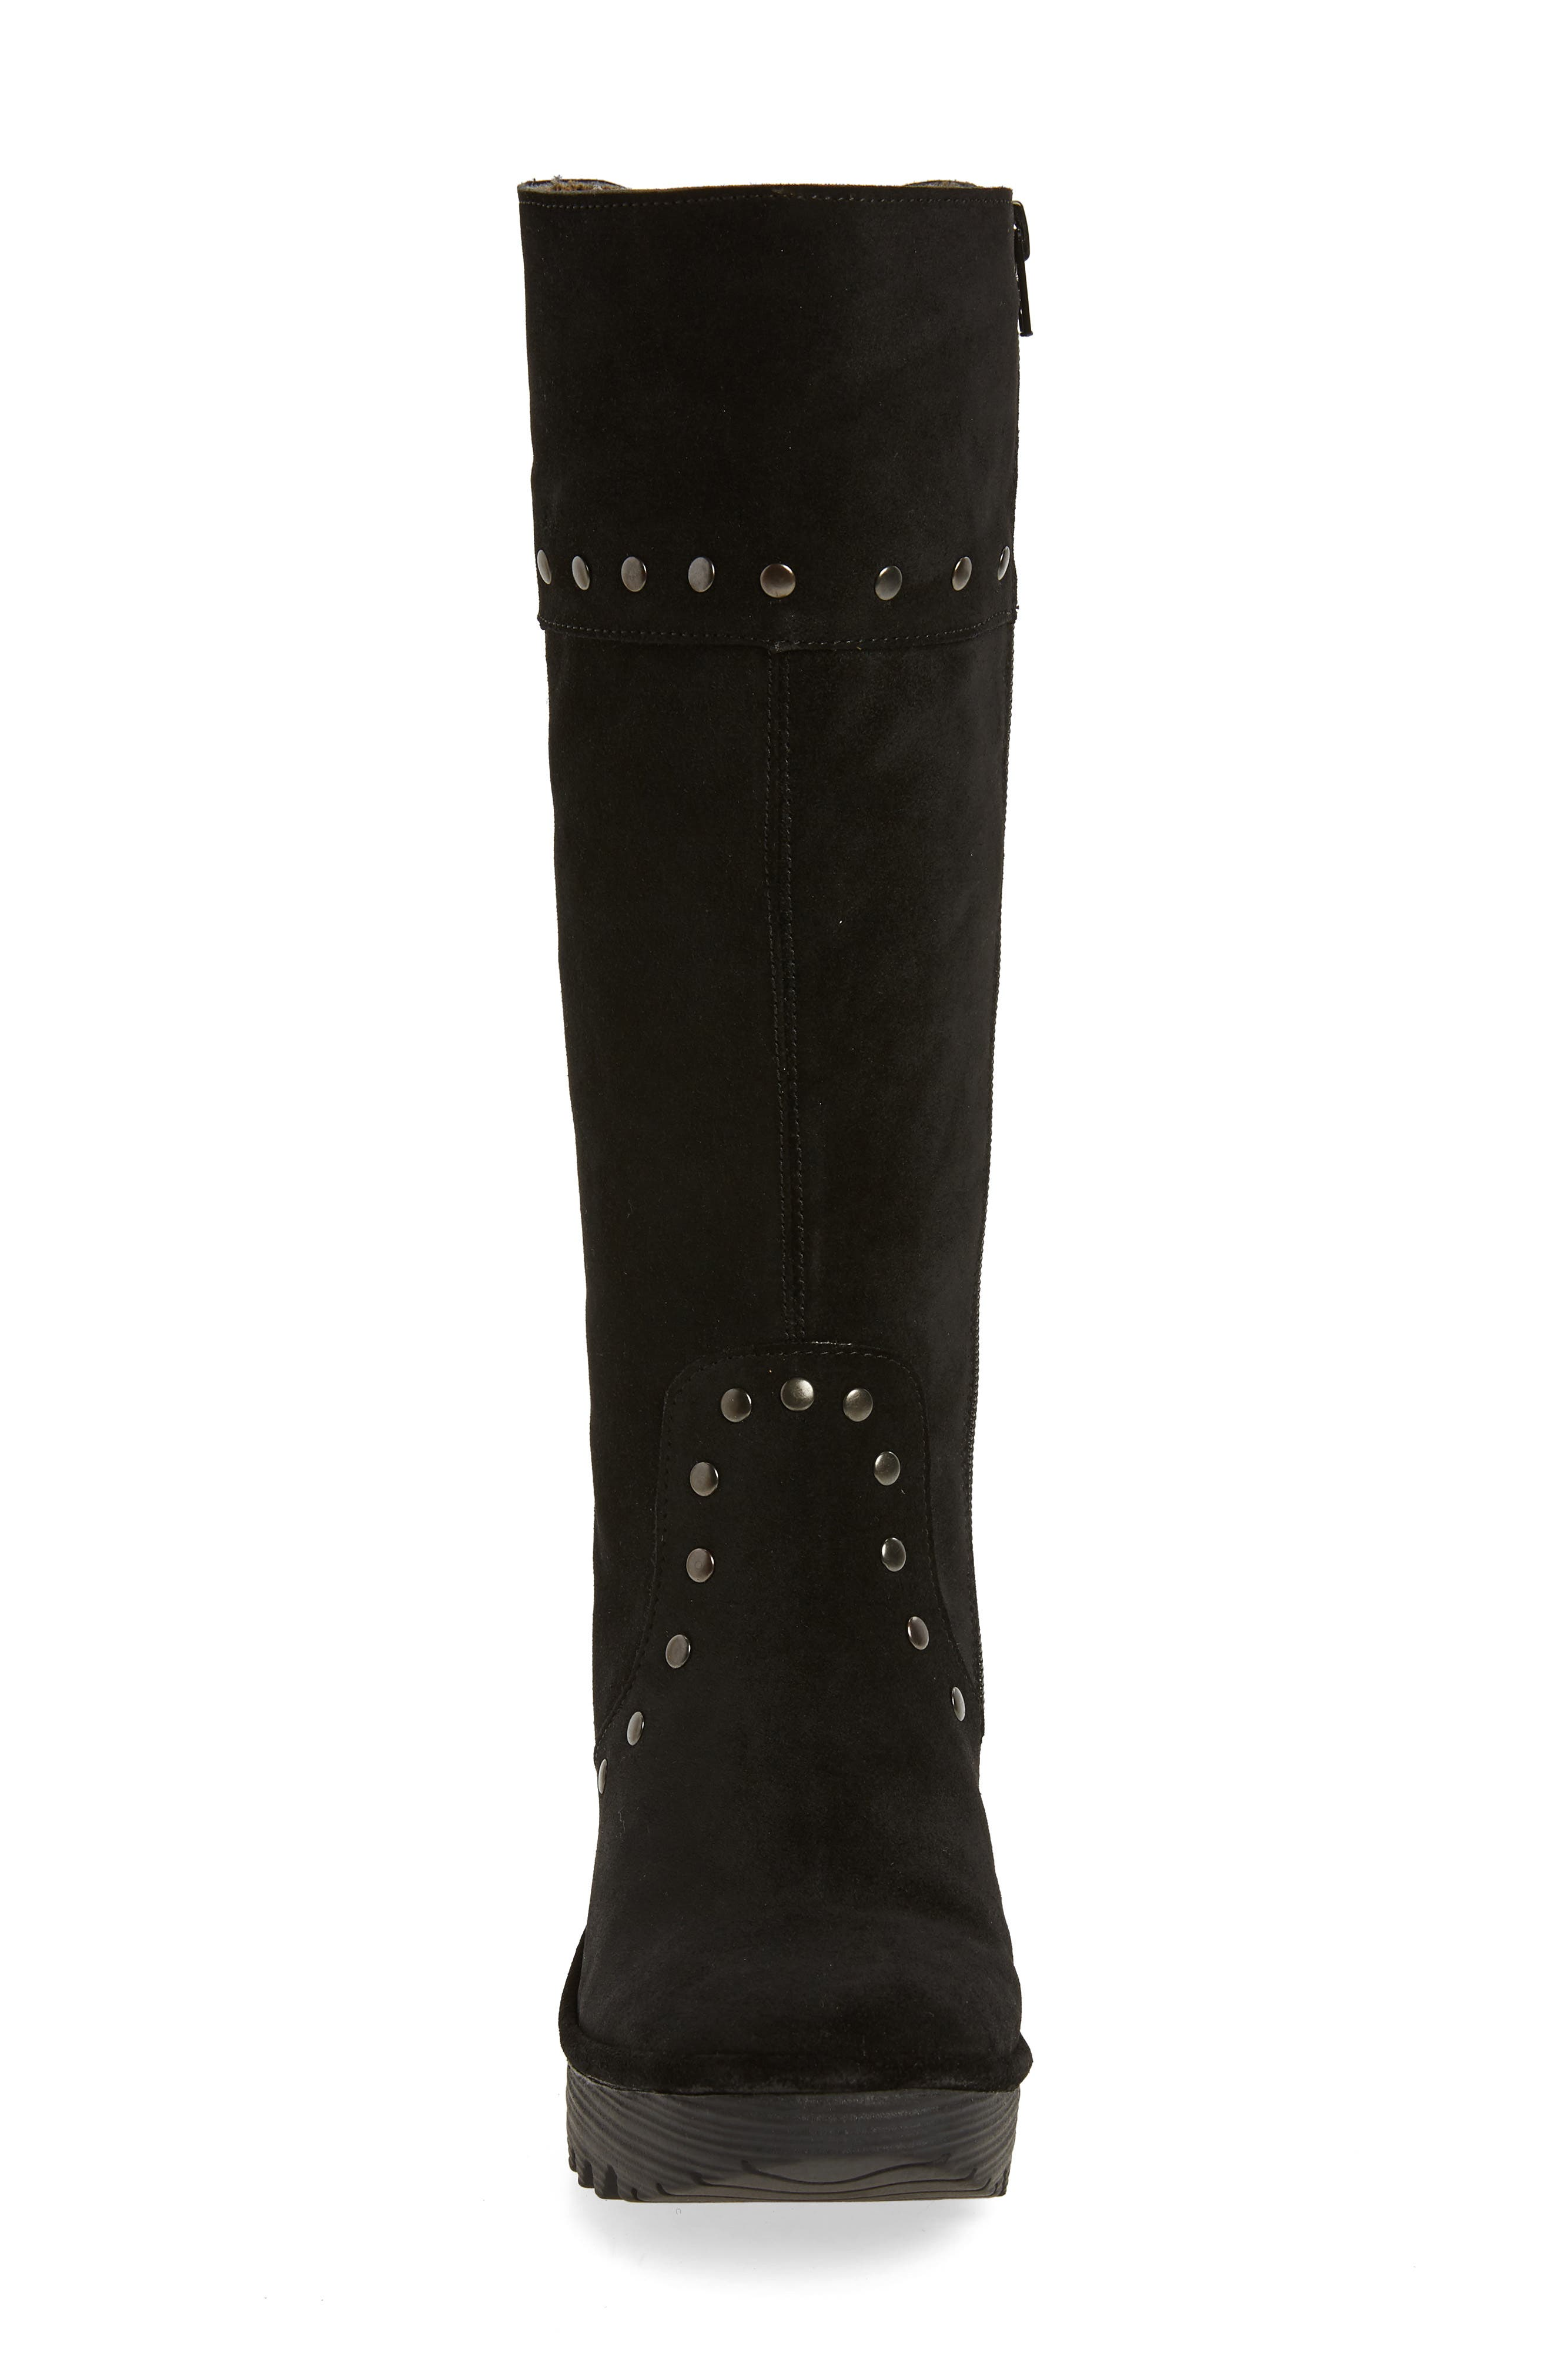 Yota Knee High Boot,                             Alternate thumbnail 4, color,                             BLACK OIL SUEDE